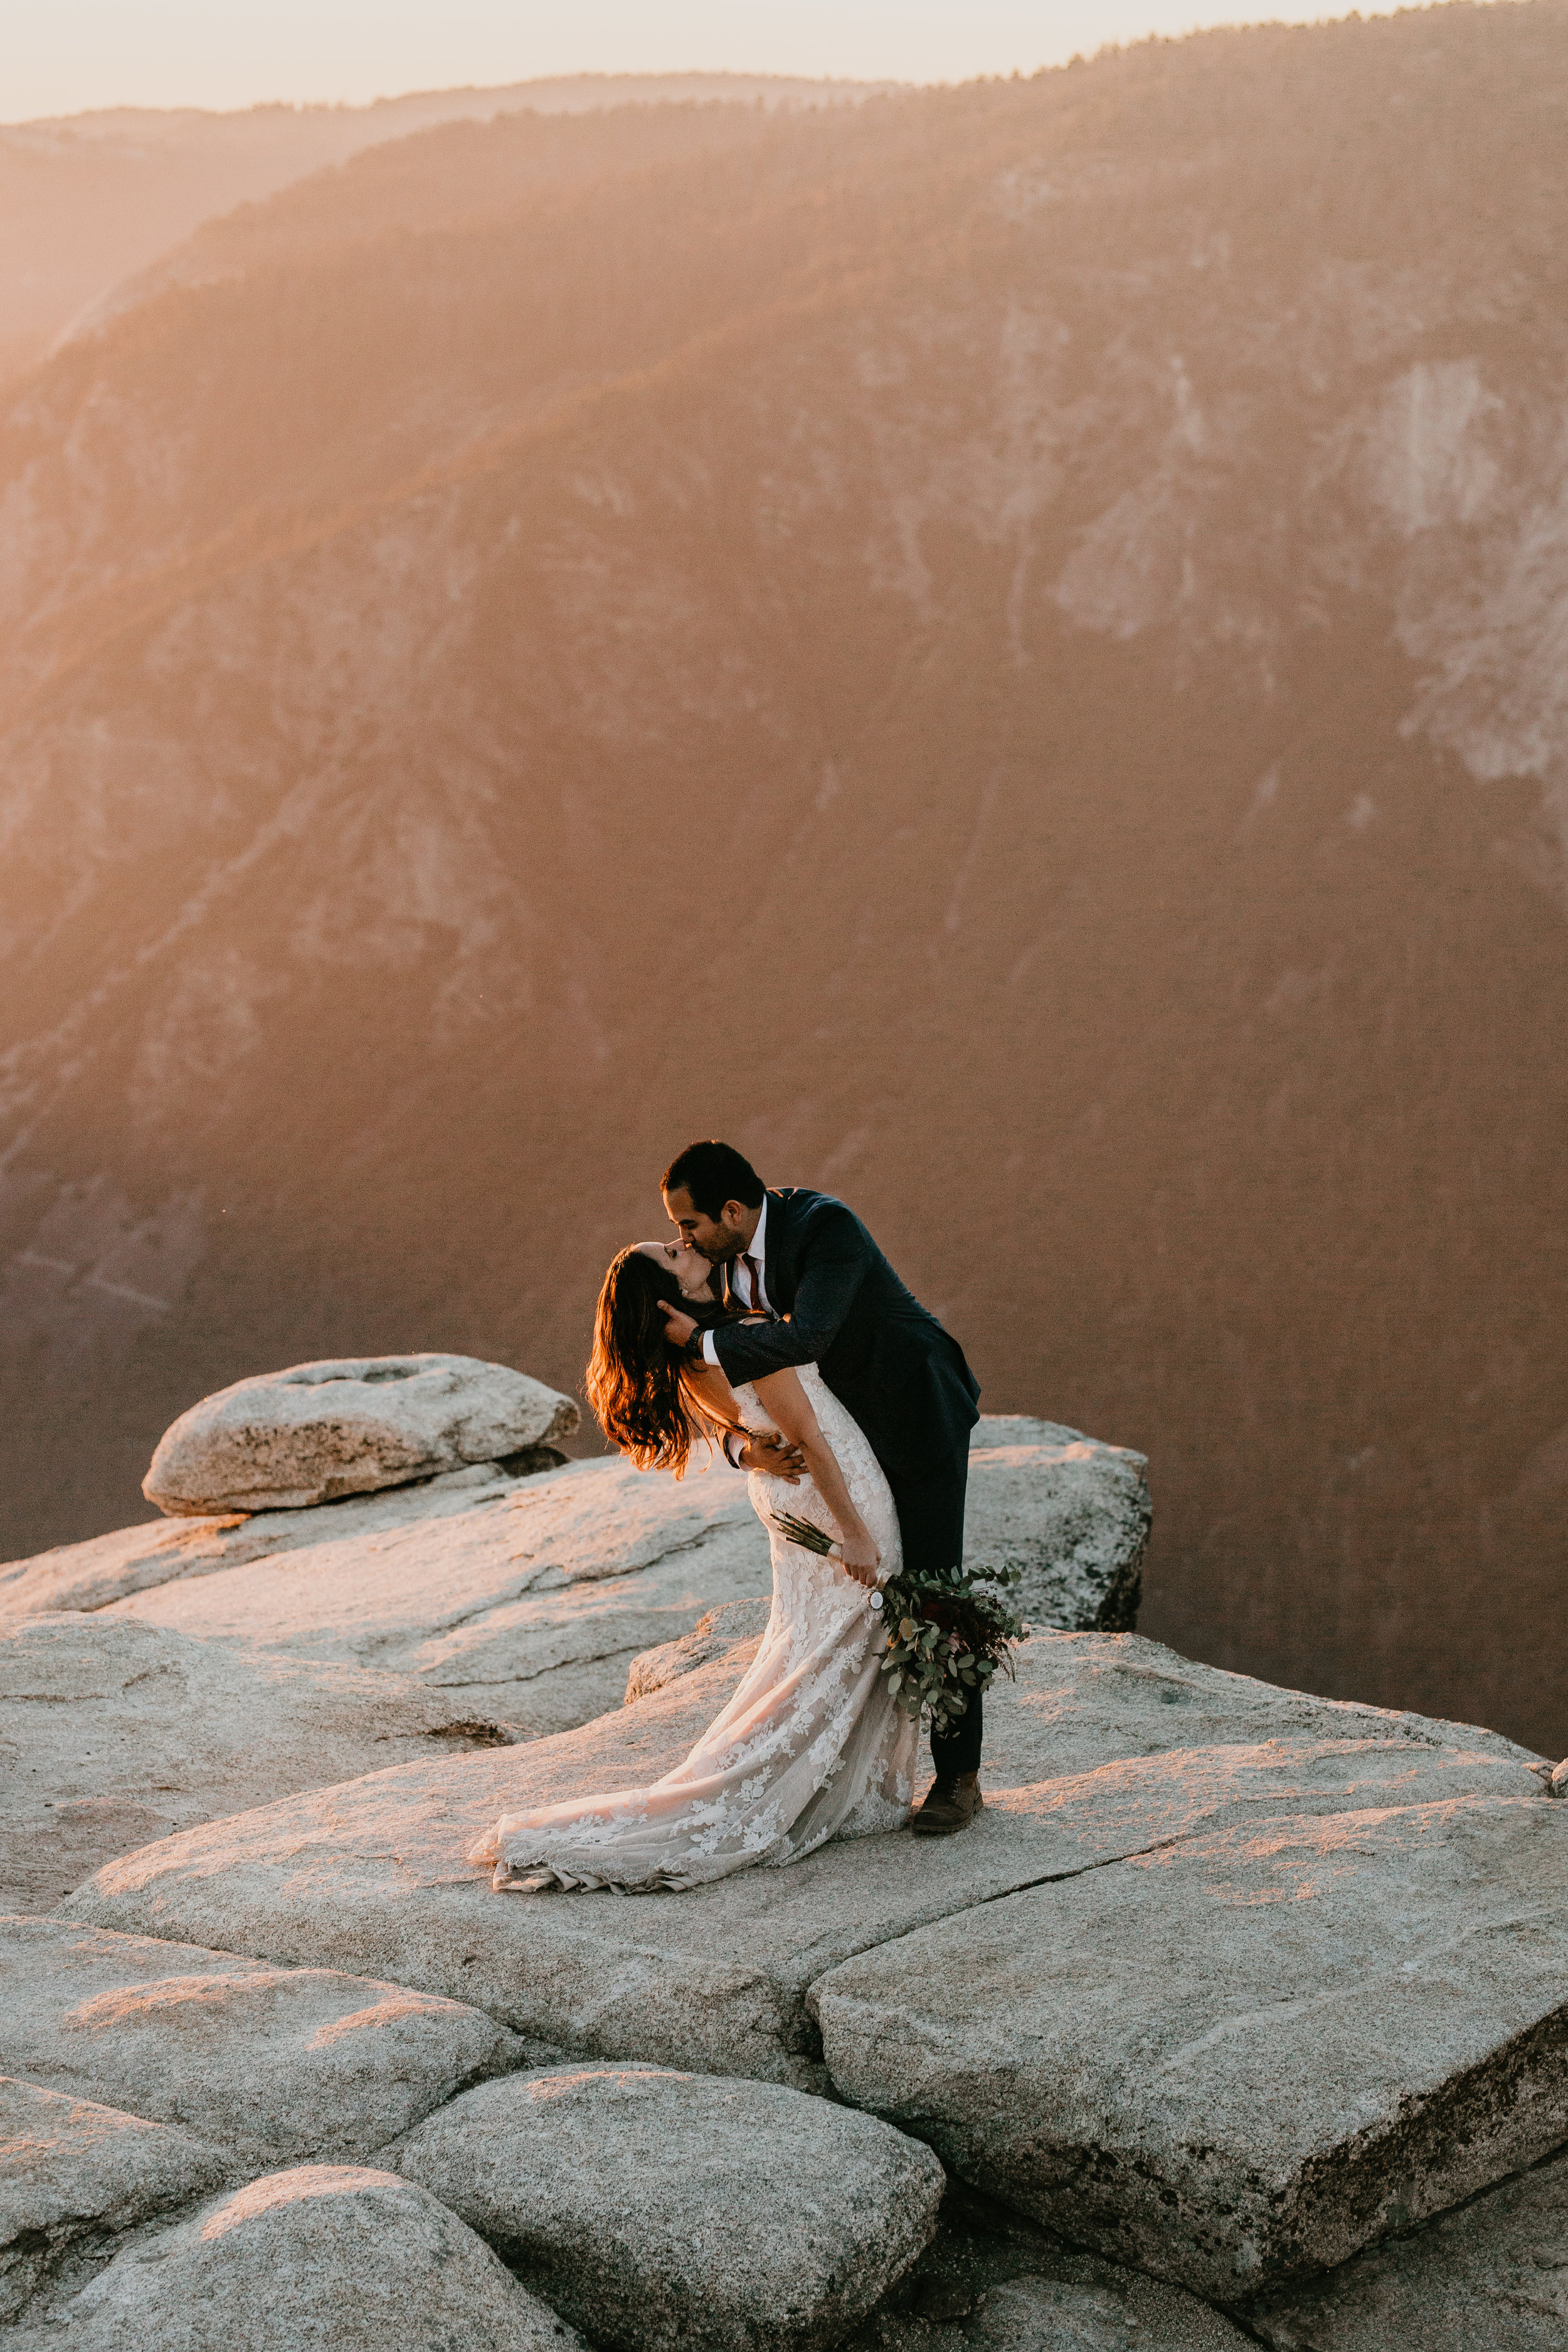 nicole-daacke-photography-intimate-elopement-wedding-yosemite-national-park-california-taft-point-sunset-photos-yosemite-valley-tunnel-view-first-look-sunrise-golden-granite-hiking-adventure-wedding-adventurous-elopement-photographer-116.jpg